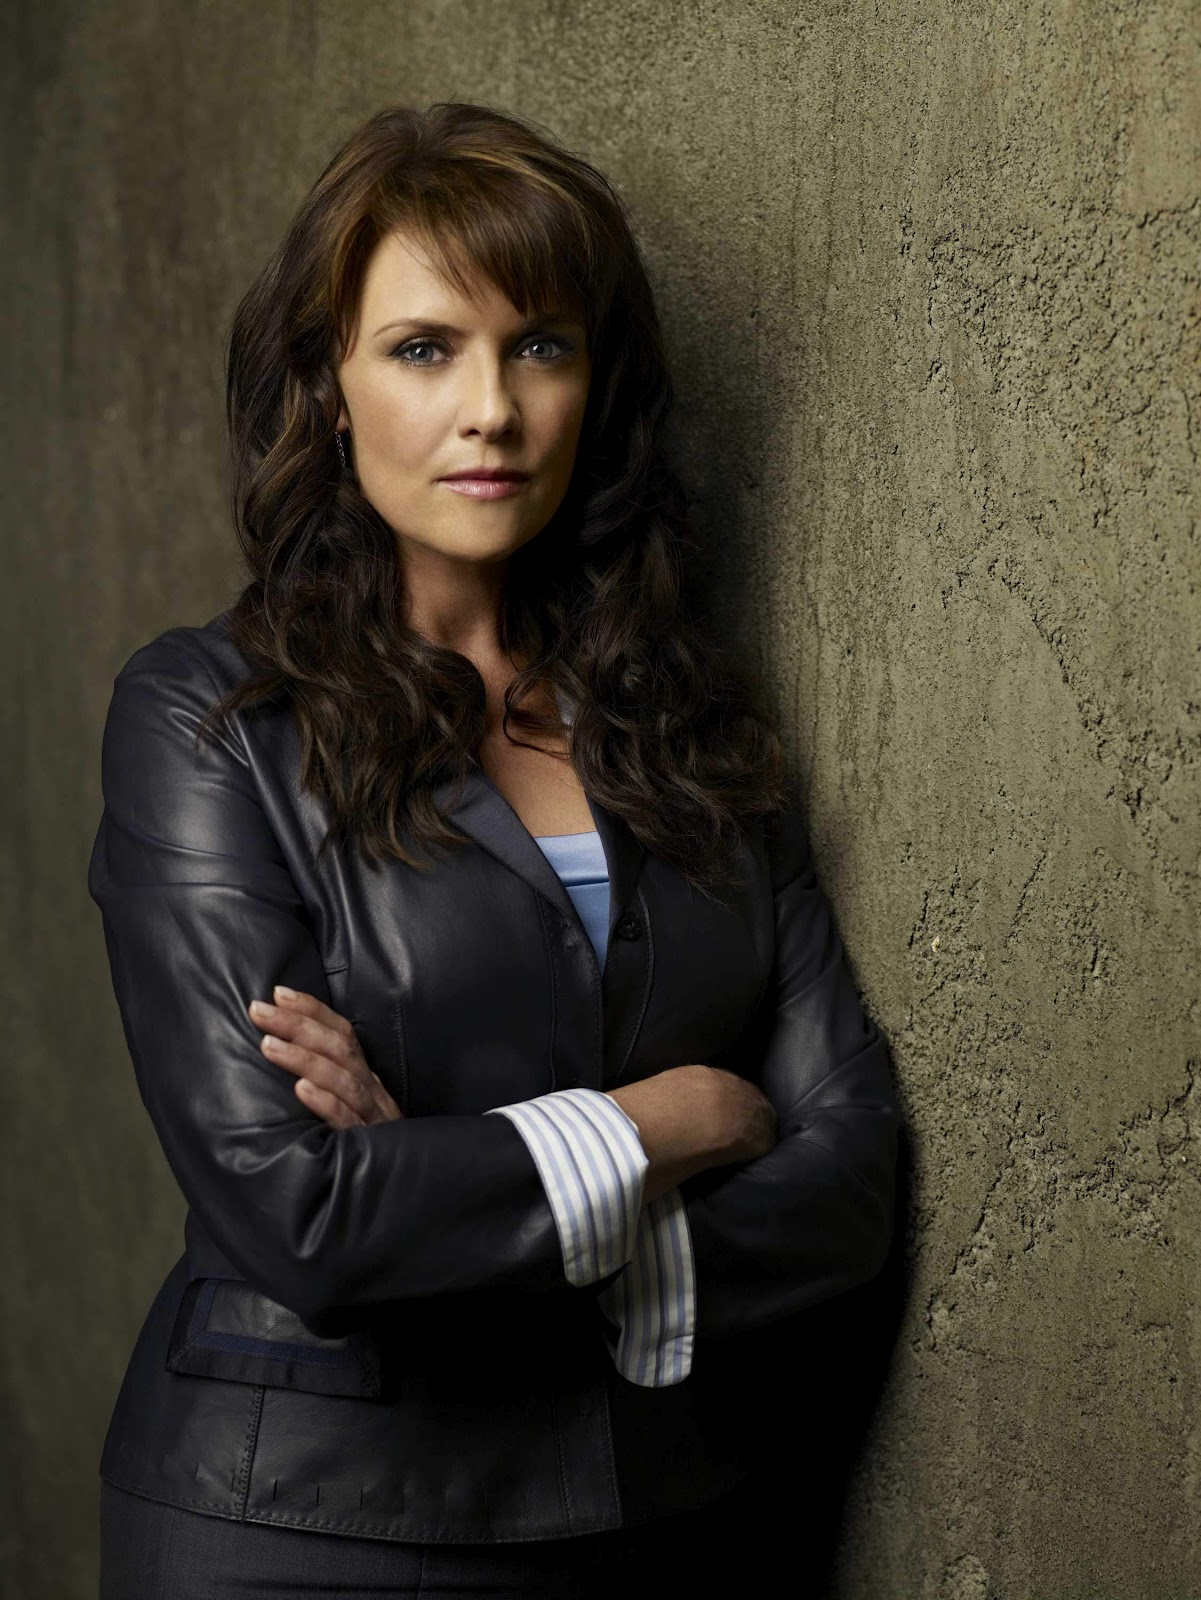 Celebrities movies and games amanda tapping sanctuary stills